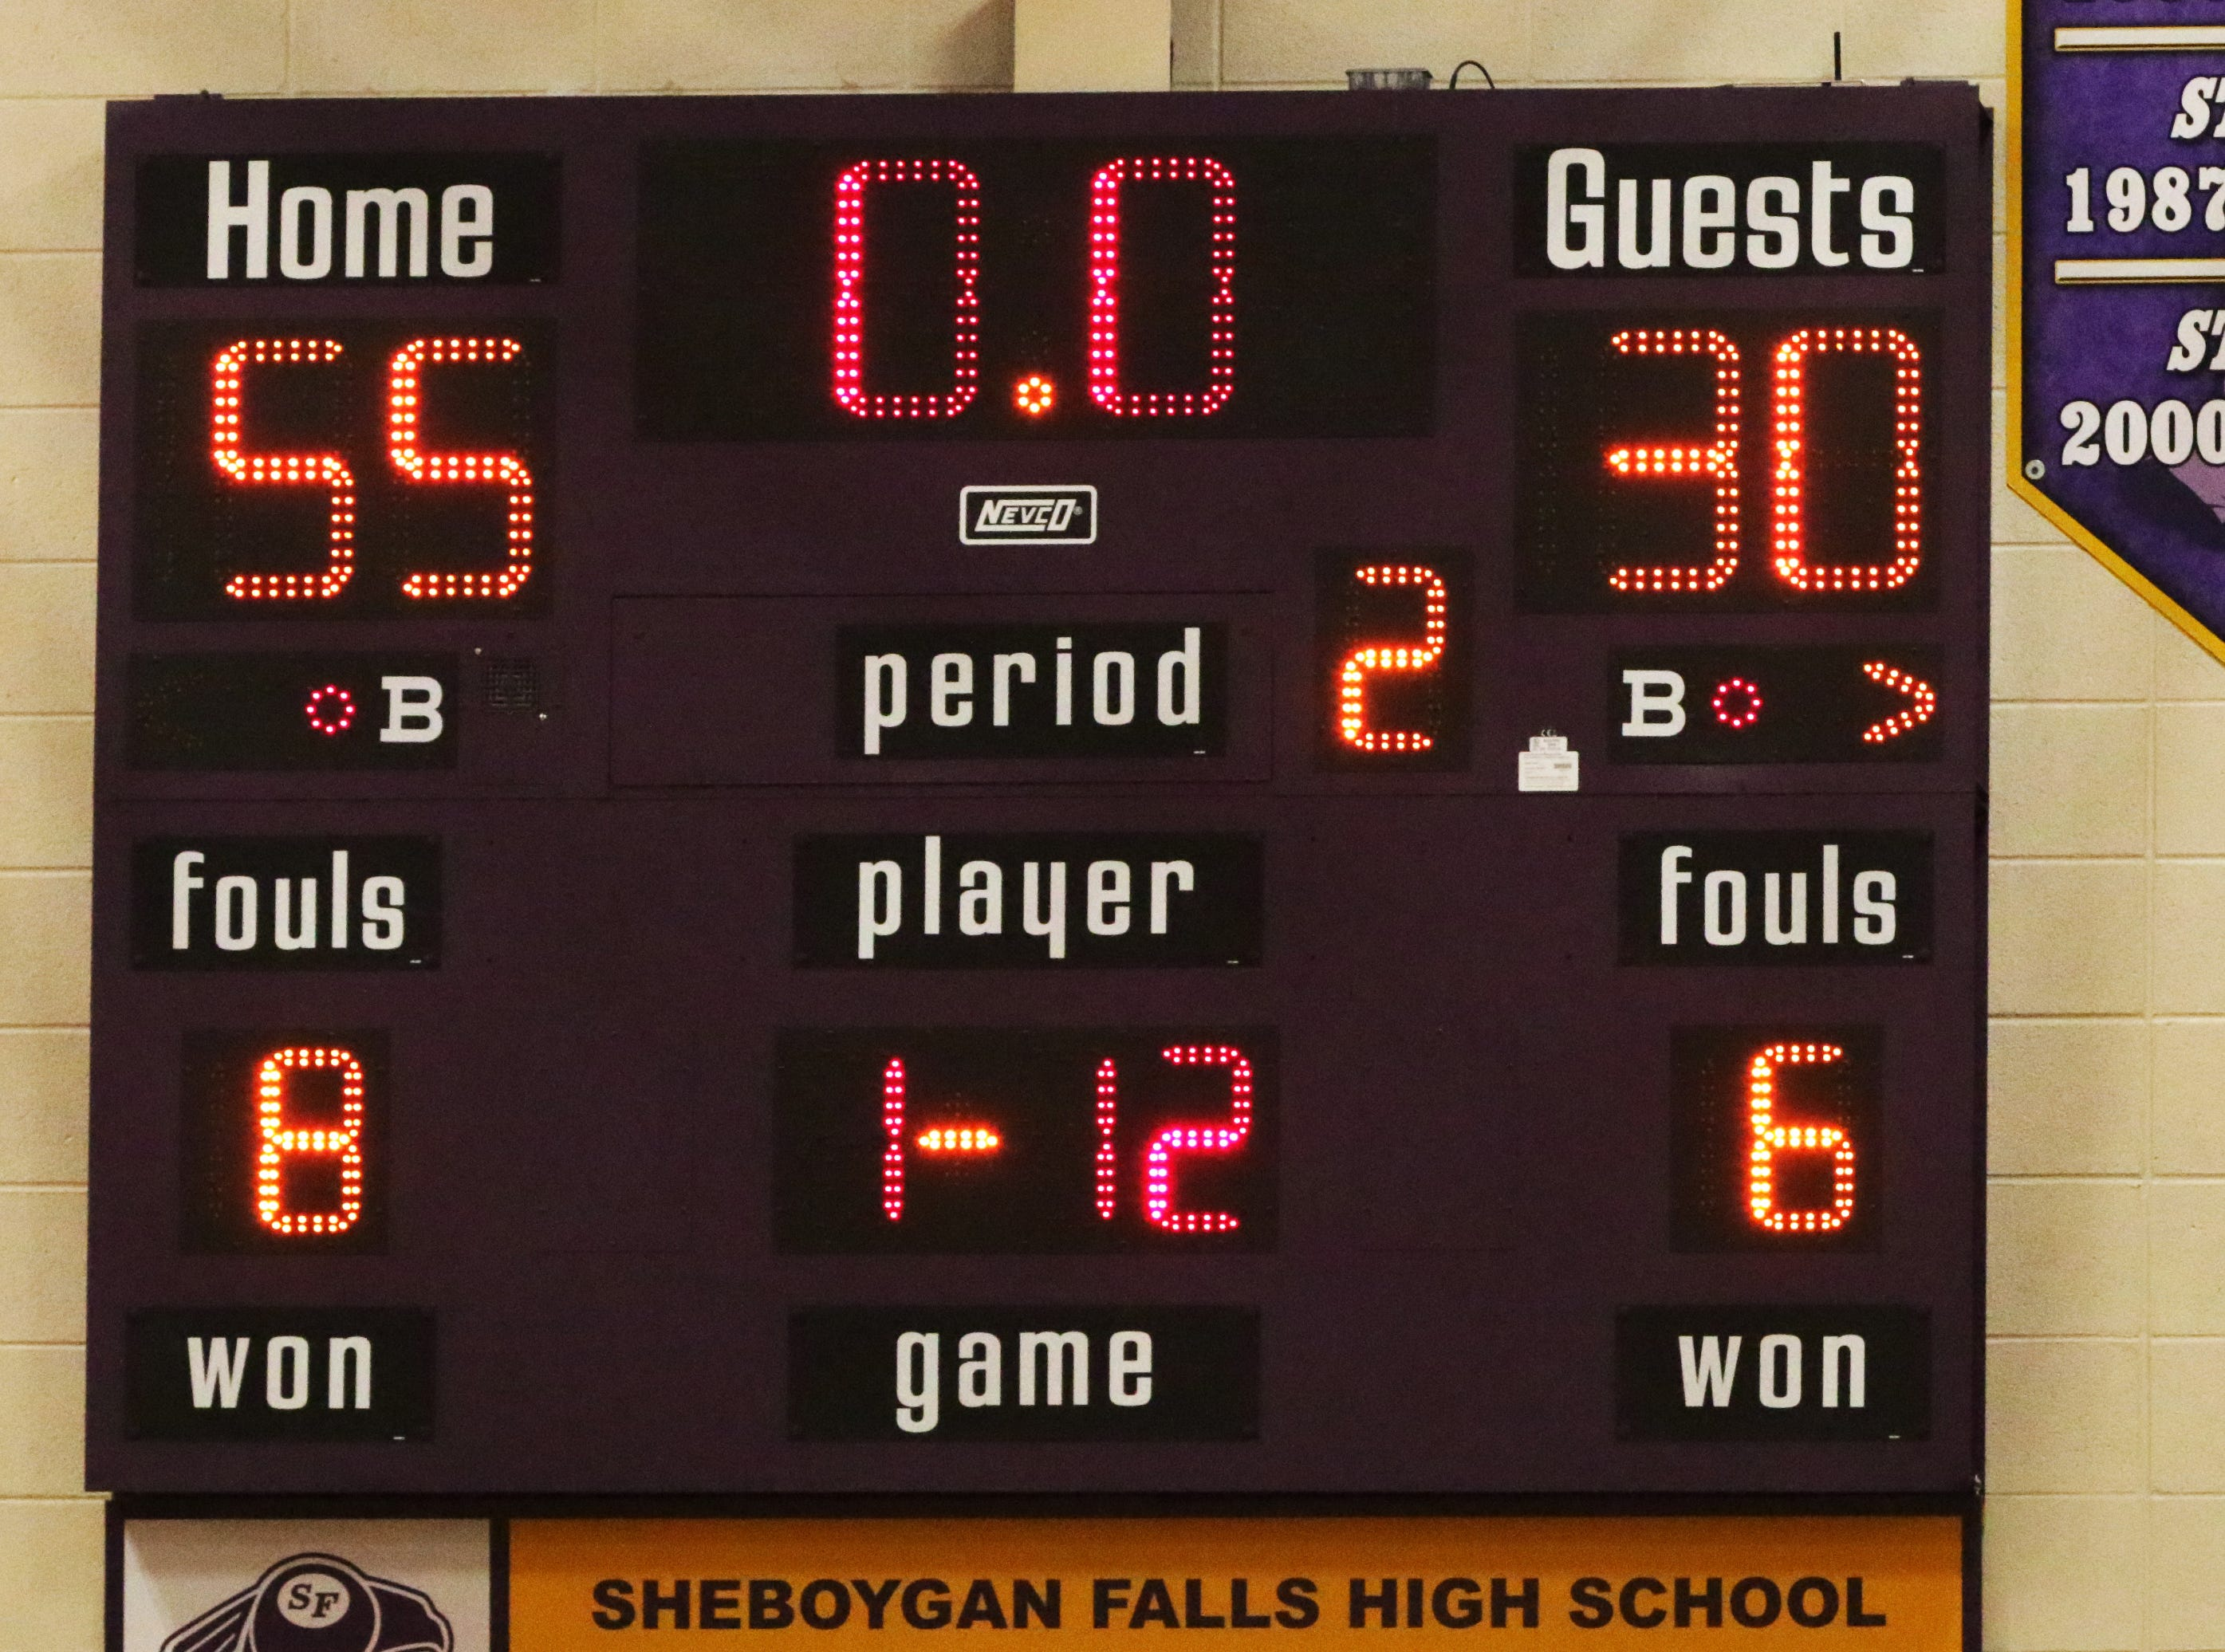 FINAL - Sheboygan Falls 55, Two Rivers 30, Thursday, February 14, 2019, in Sheboygan Falls, Wis.